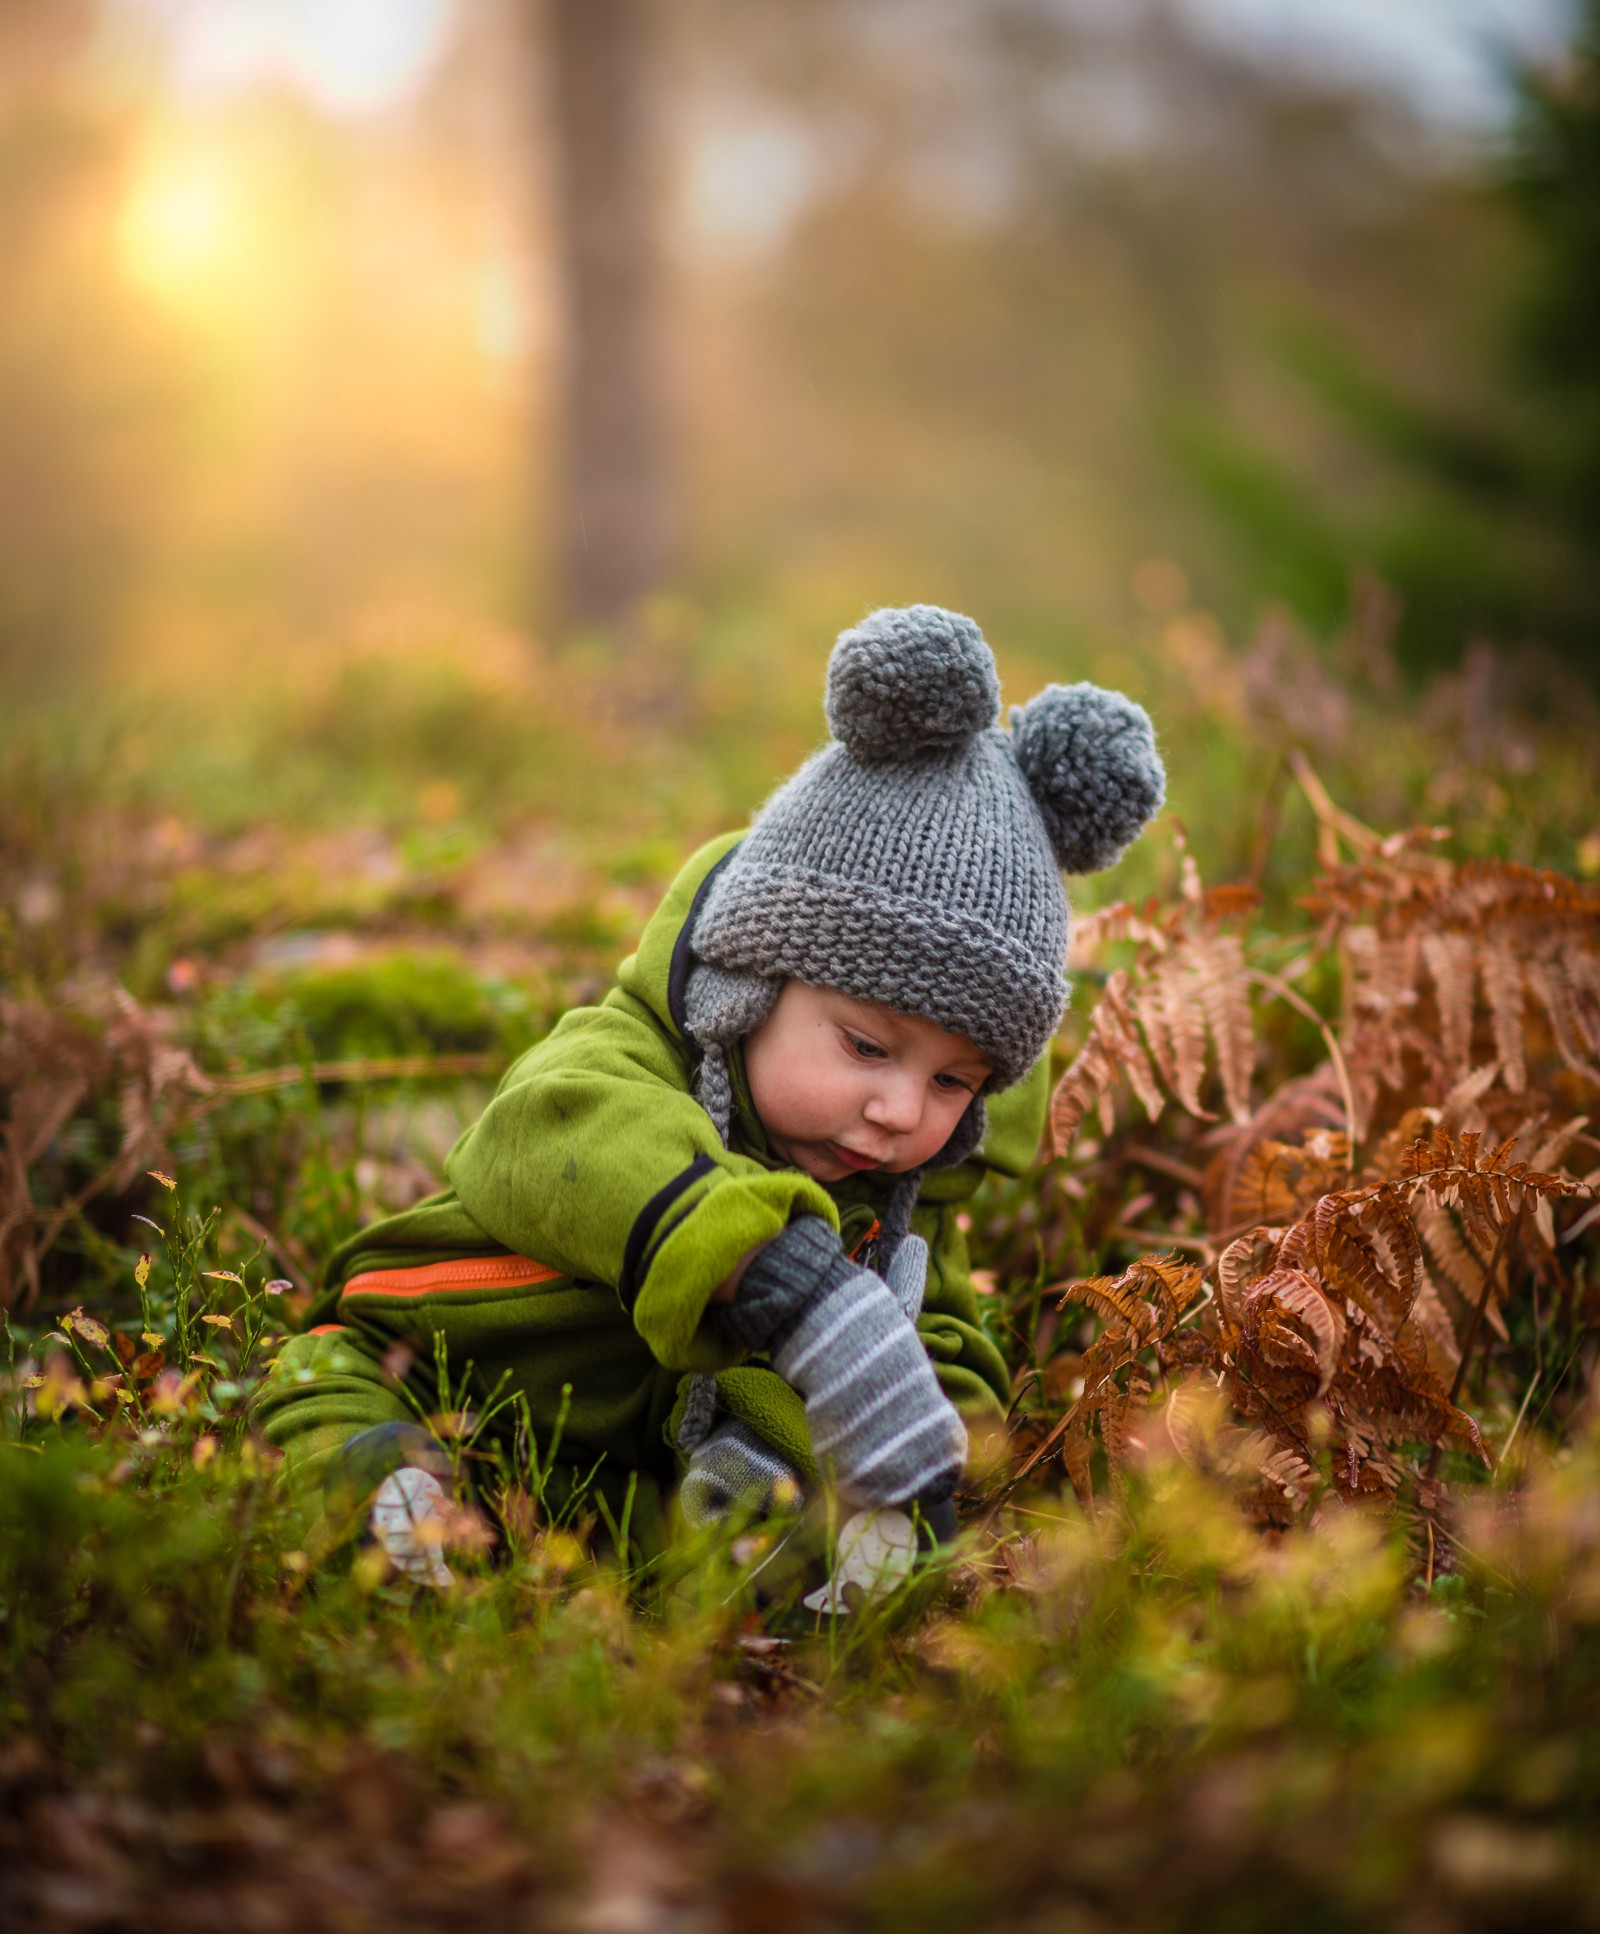 Curios child playing in the leaves